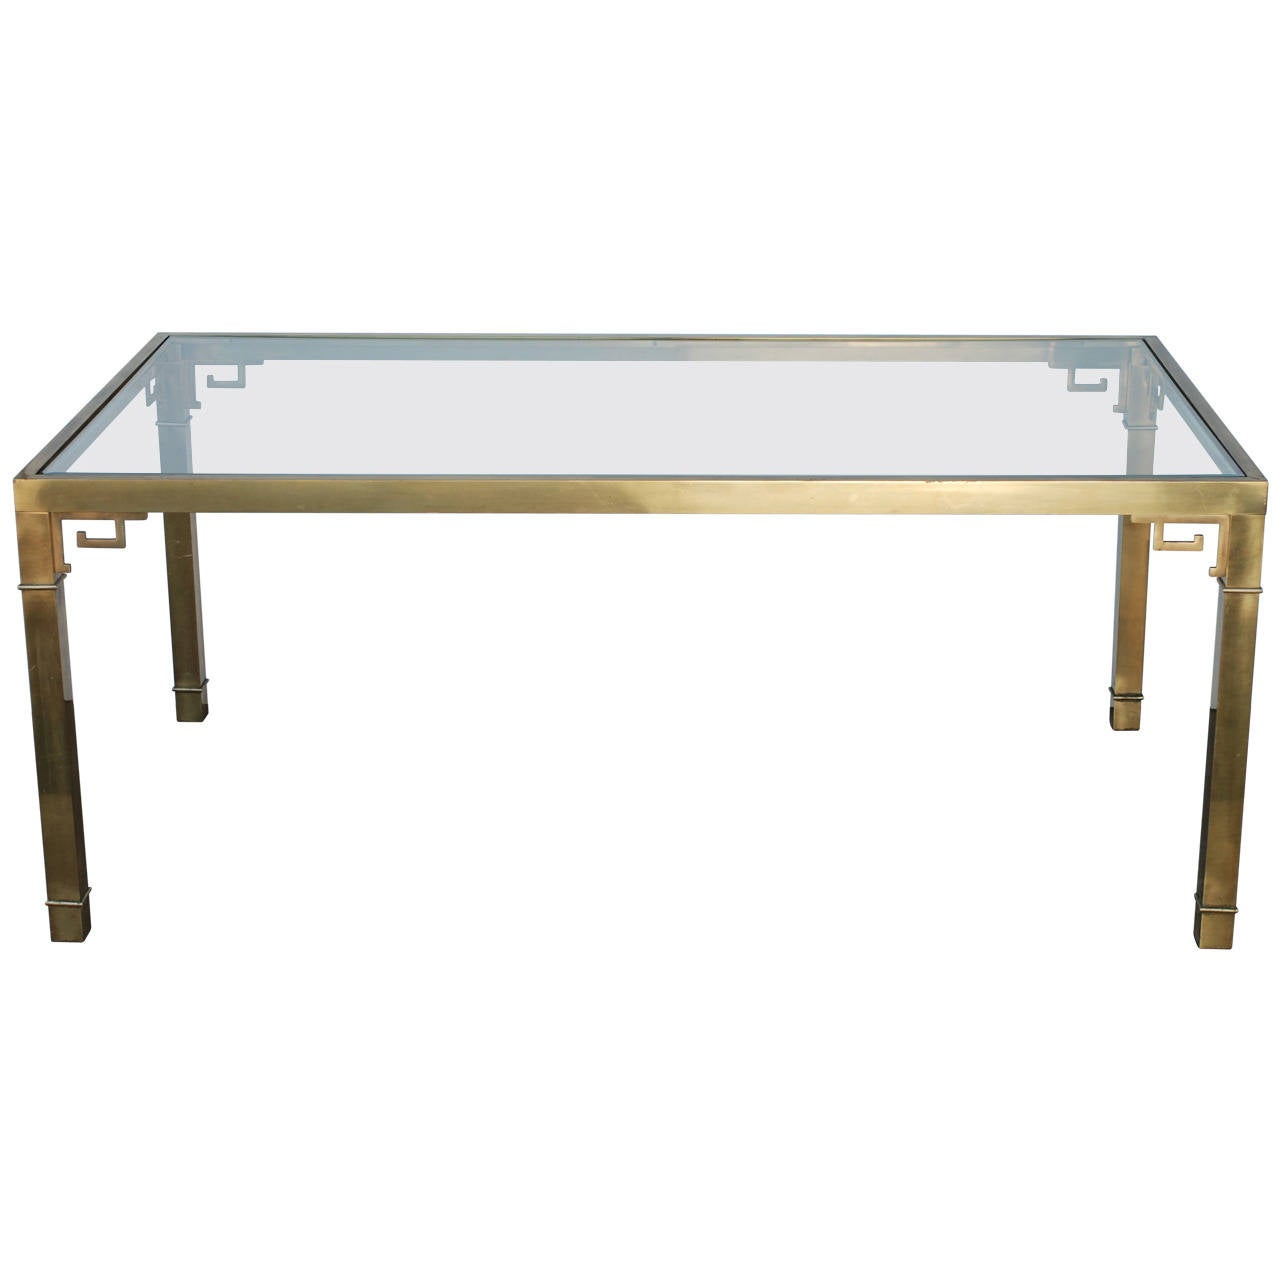 Mastercraft Brass Greek Key Dining Table For Sale At 1stdibs